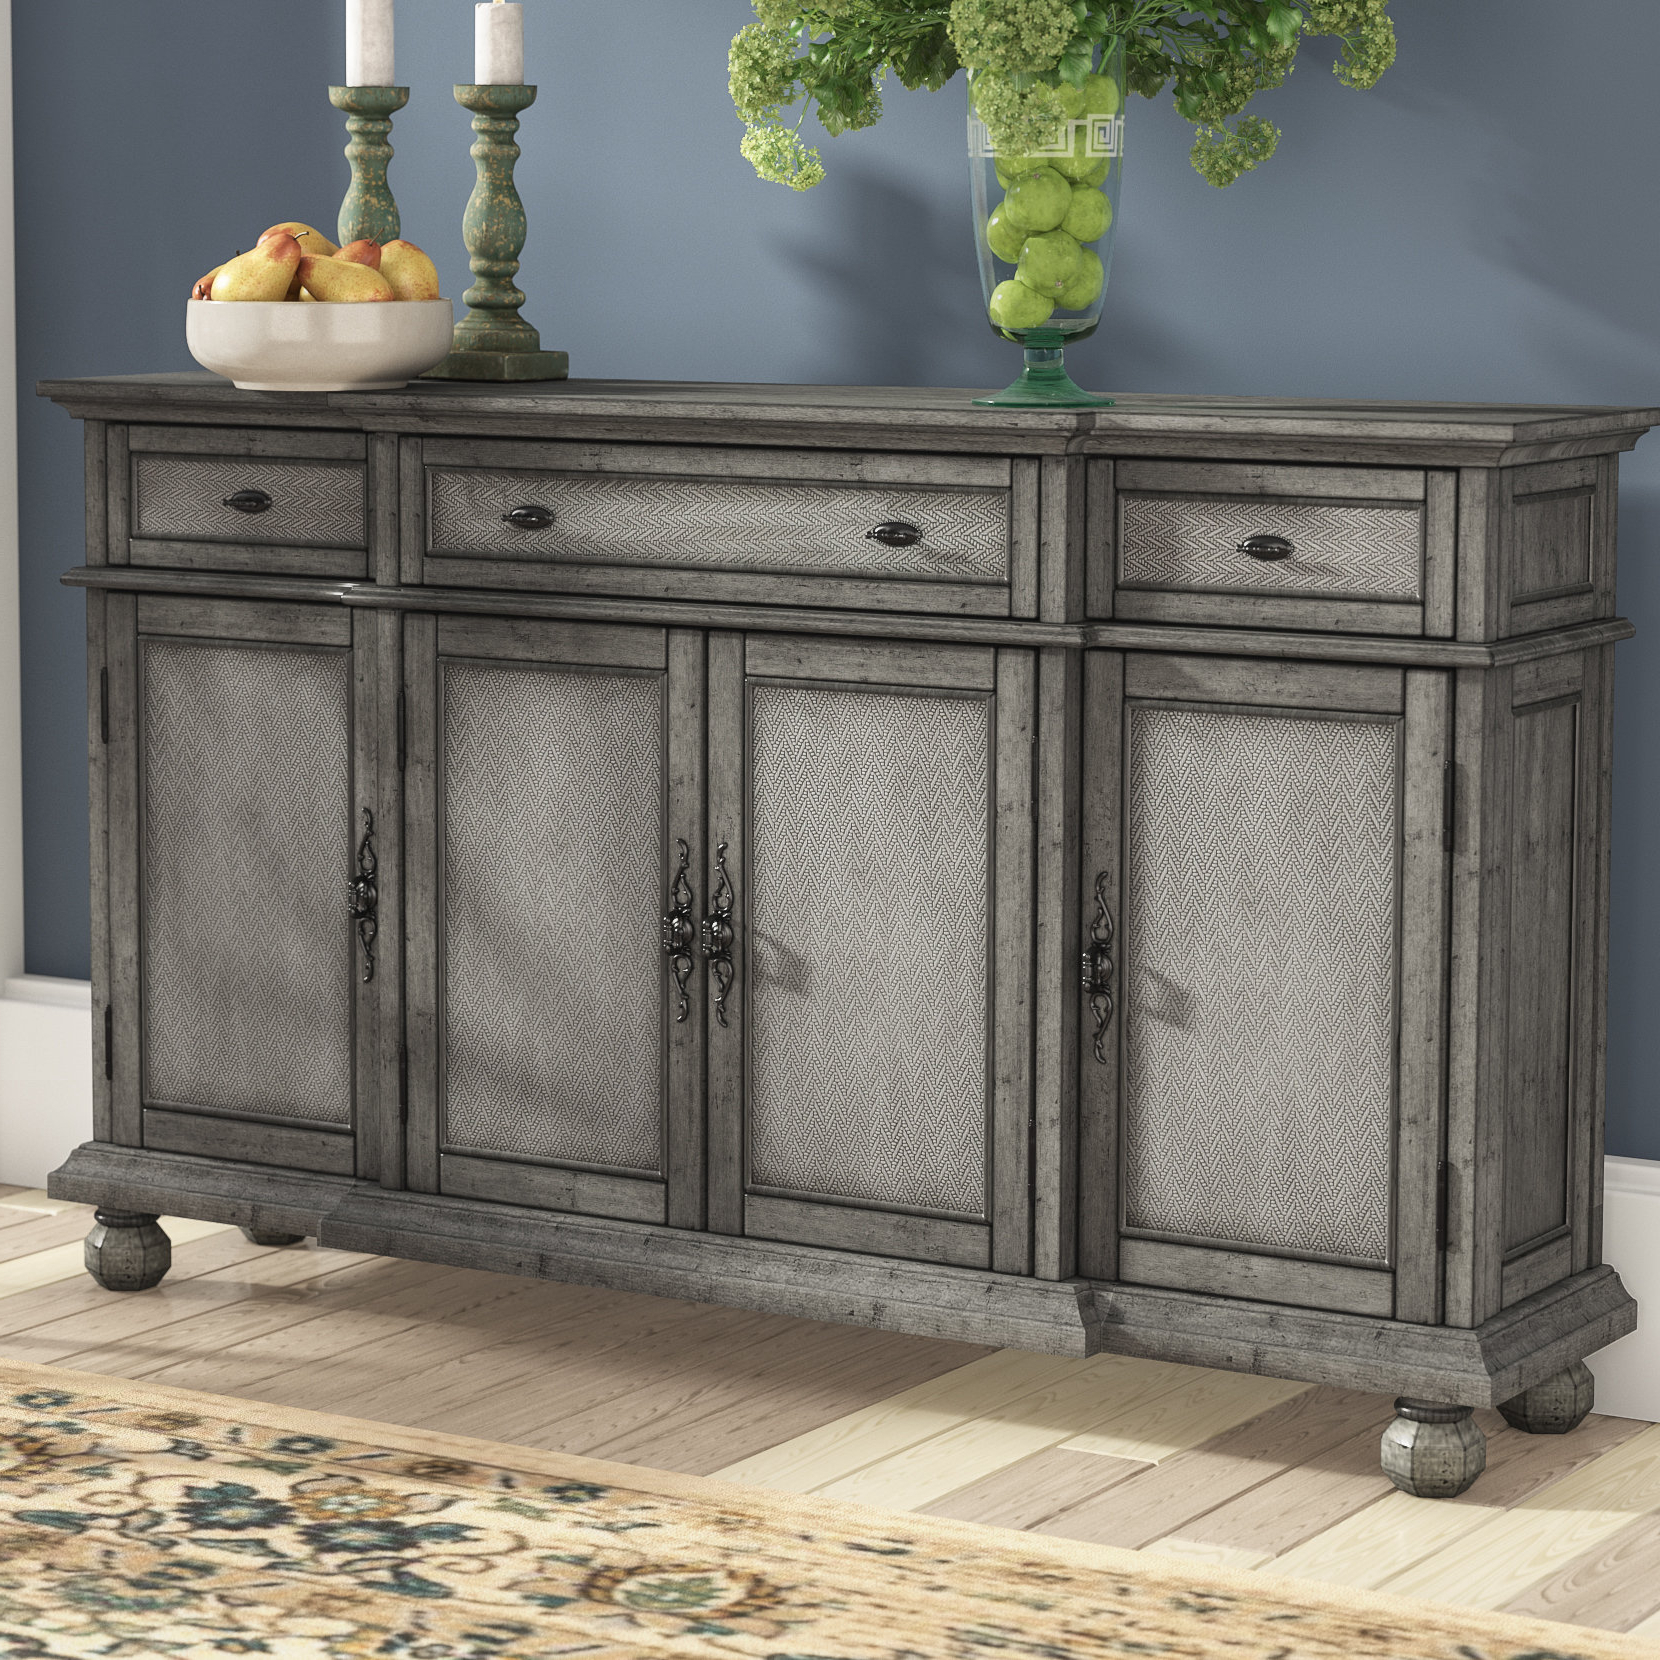 Wayfair With Senda Credenzas (View 4 of 20)